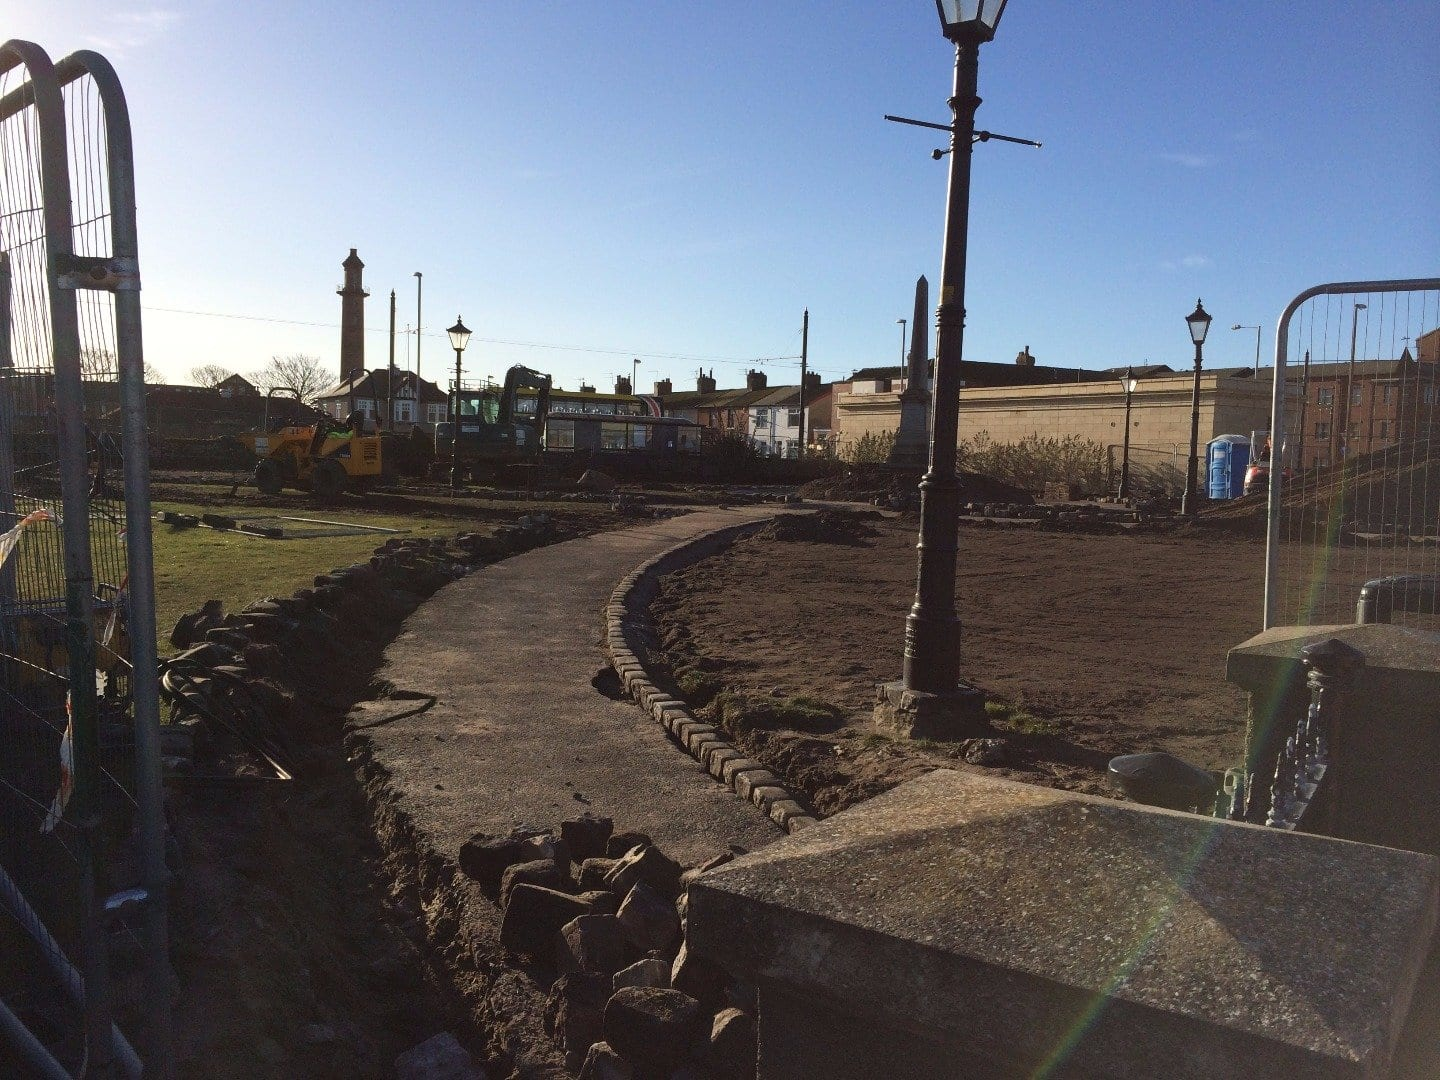 New paths laid in Euston Gardens, Fleetwood during redevelopment works in 2015